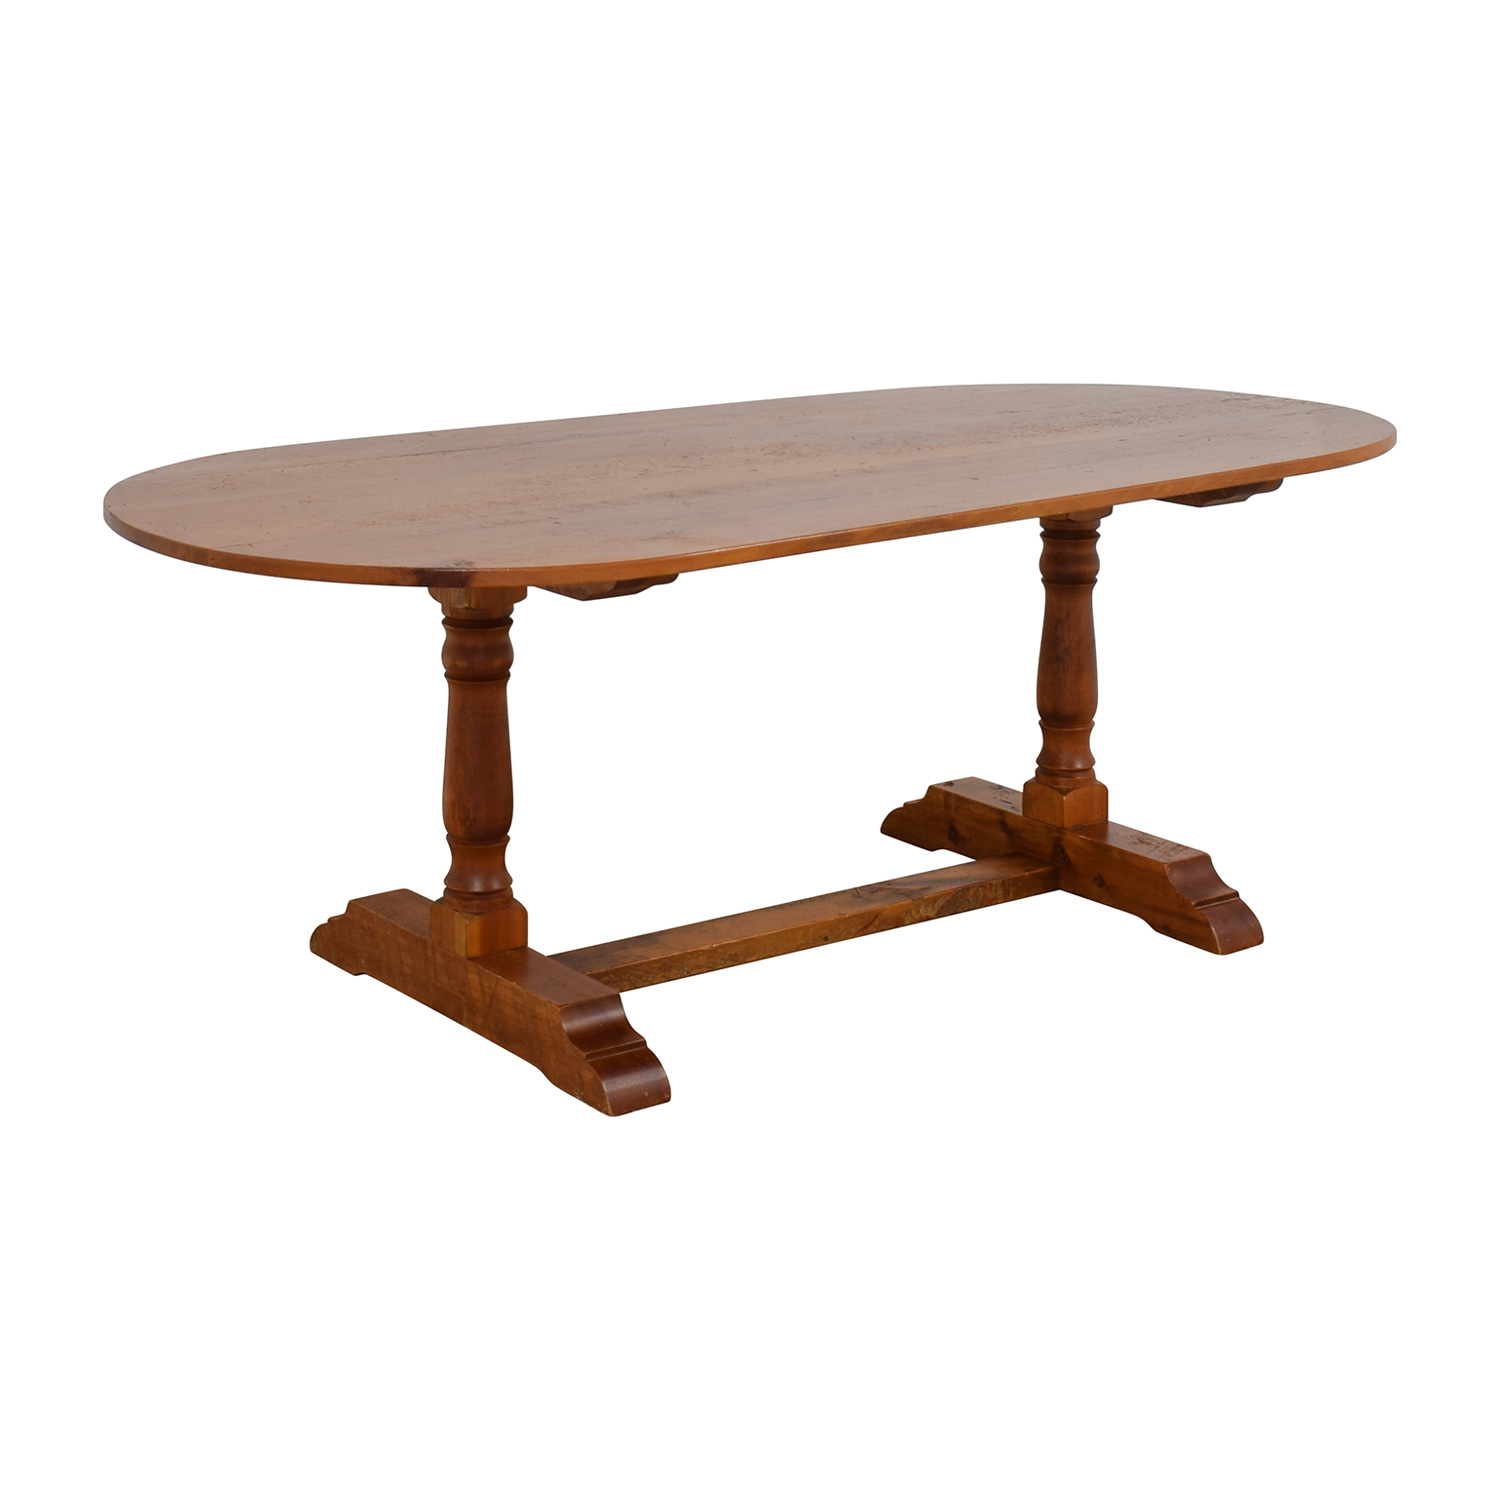 Country Willow County Willow Oval Dining Table used